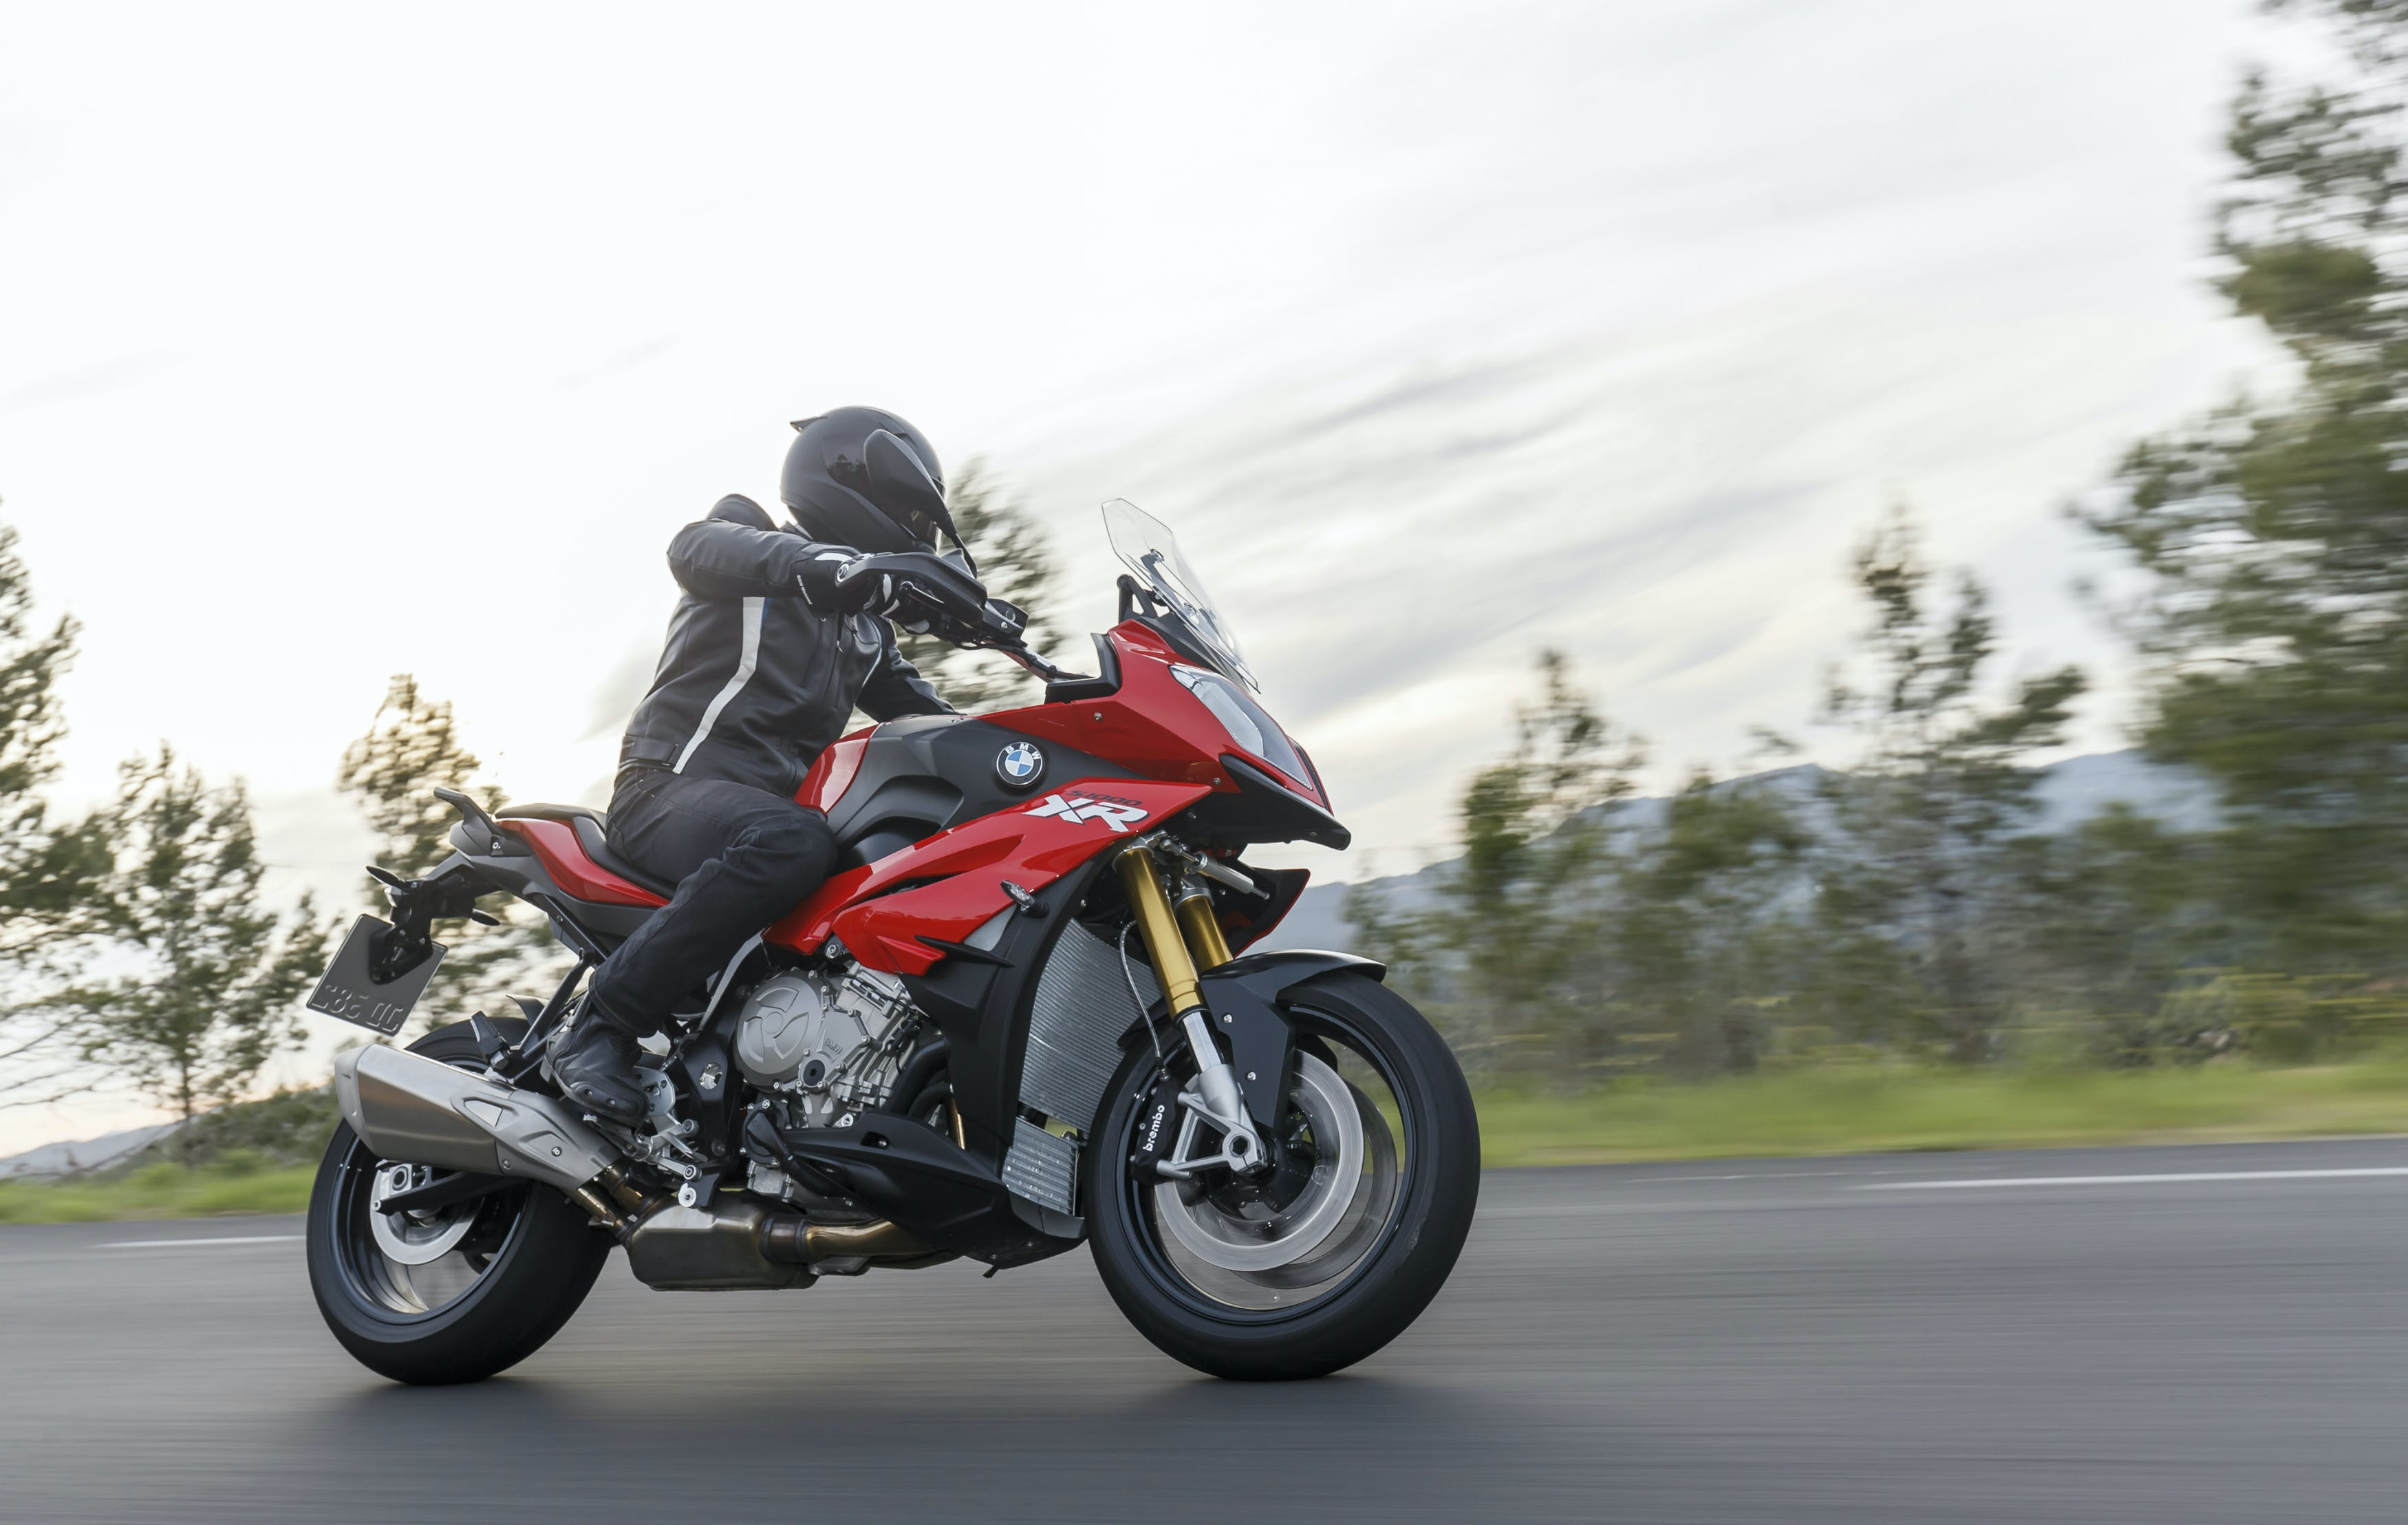 BMW S 1000 XR HP being ridden on the hill road